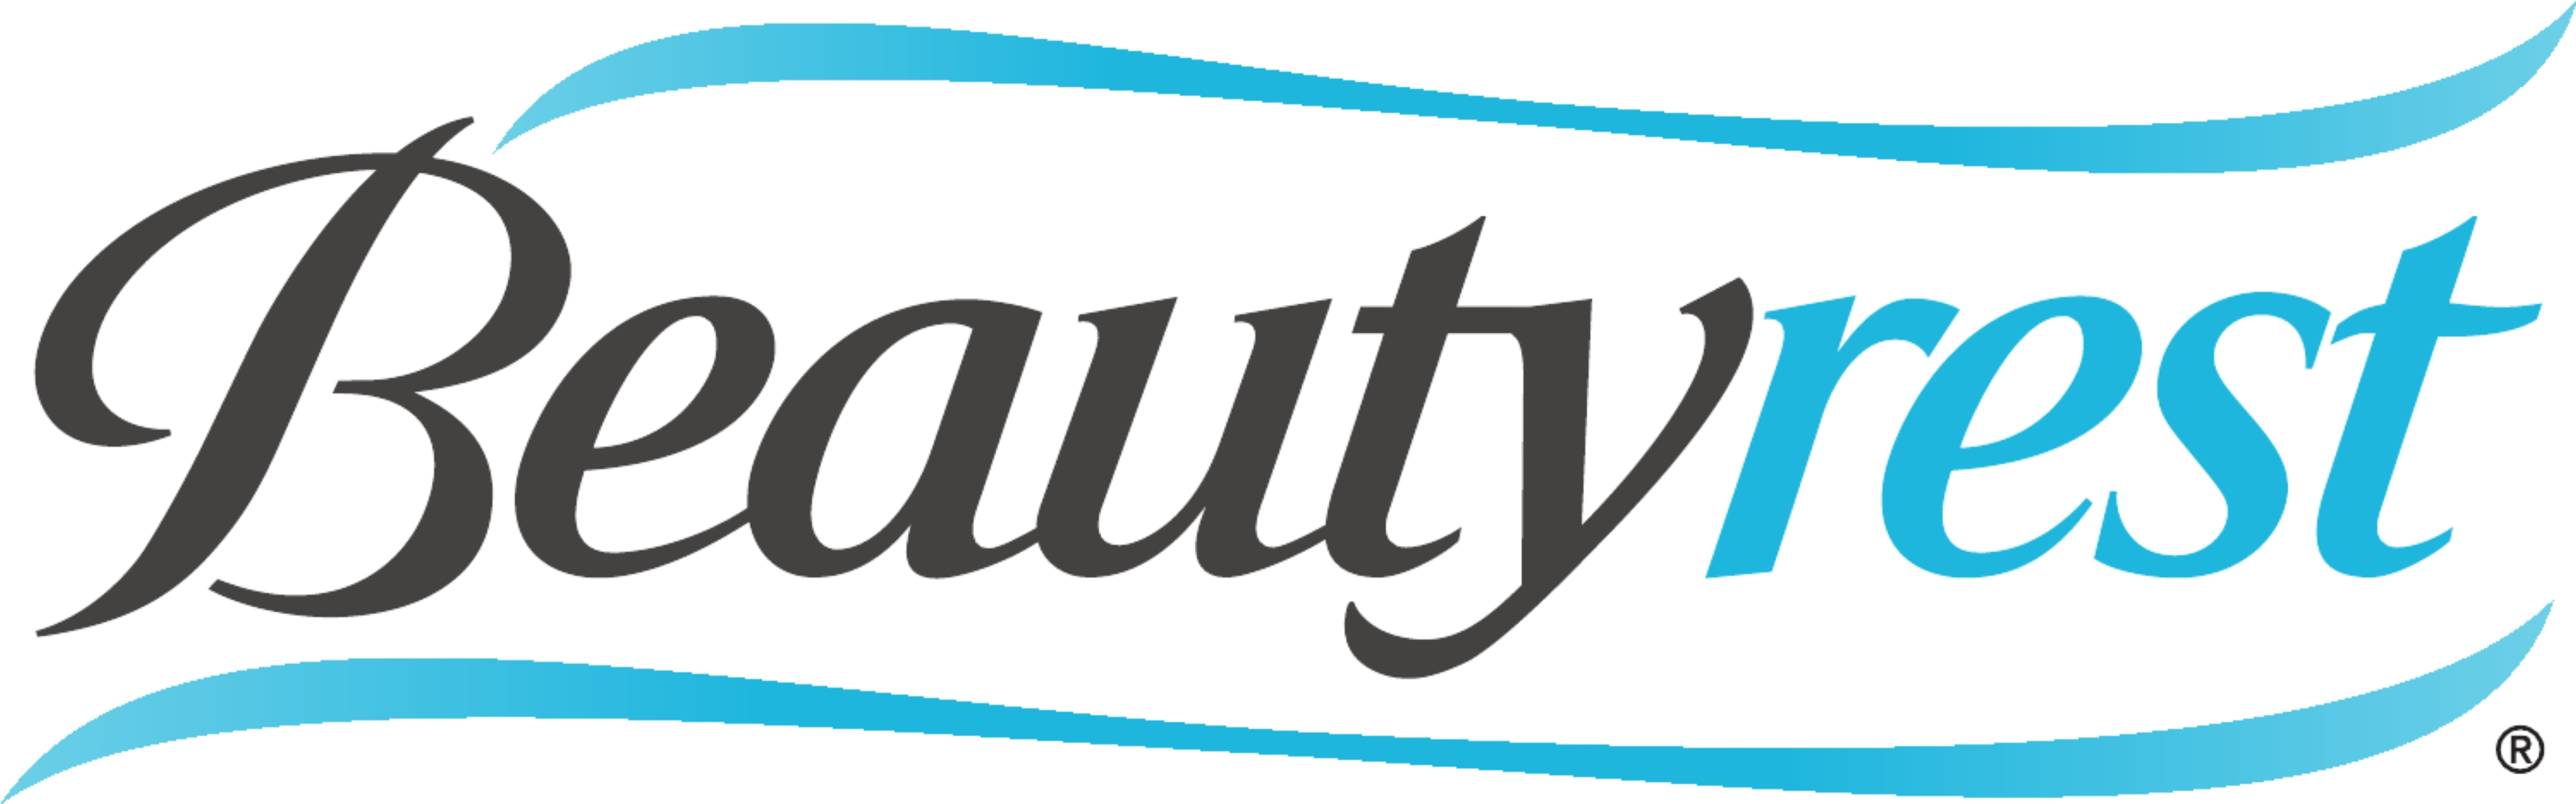 simmons bedding logo. Beautyrest Logo Simmons Bedding M